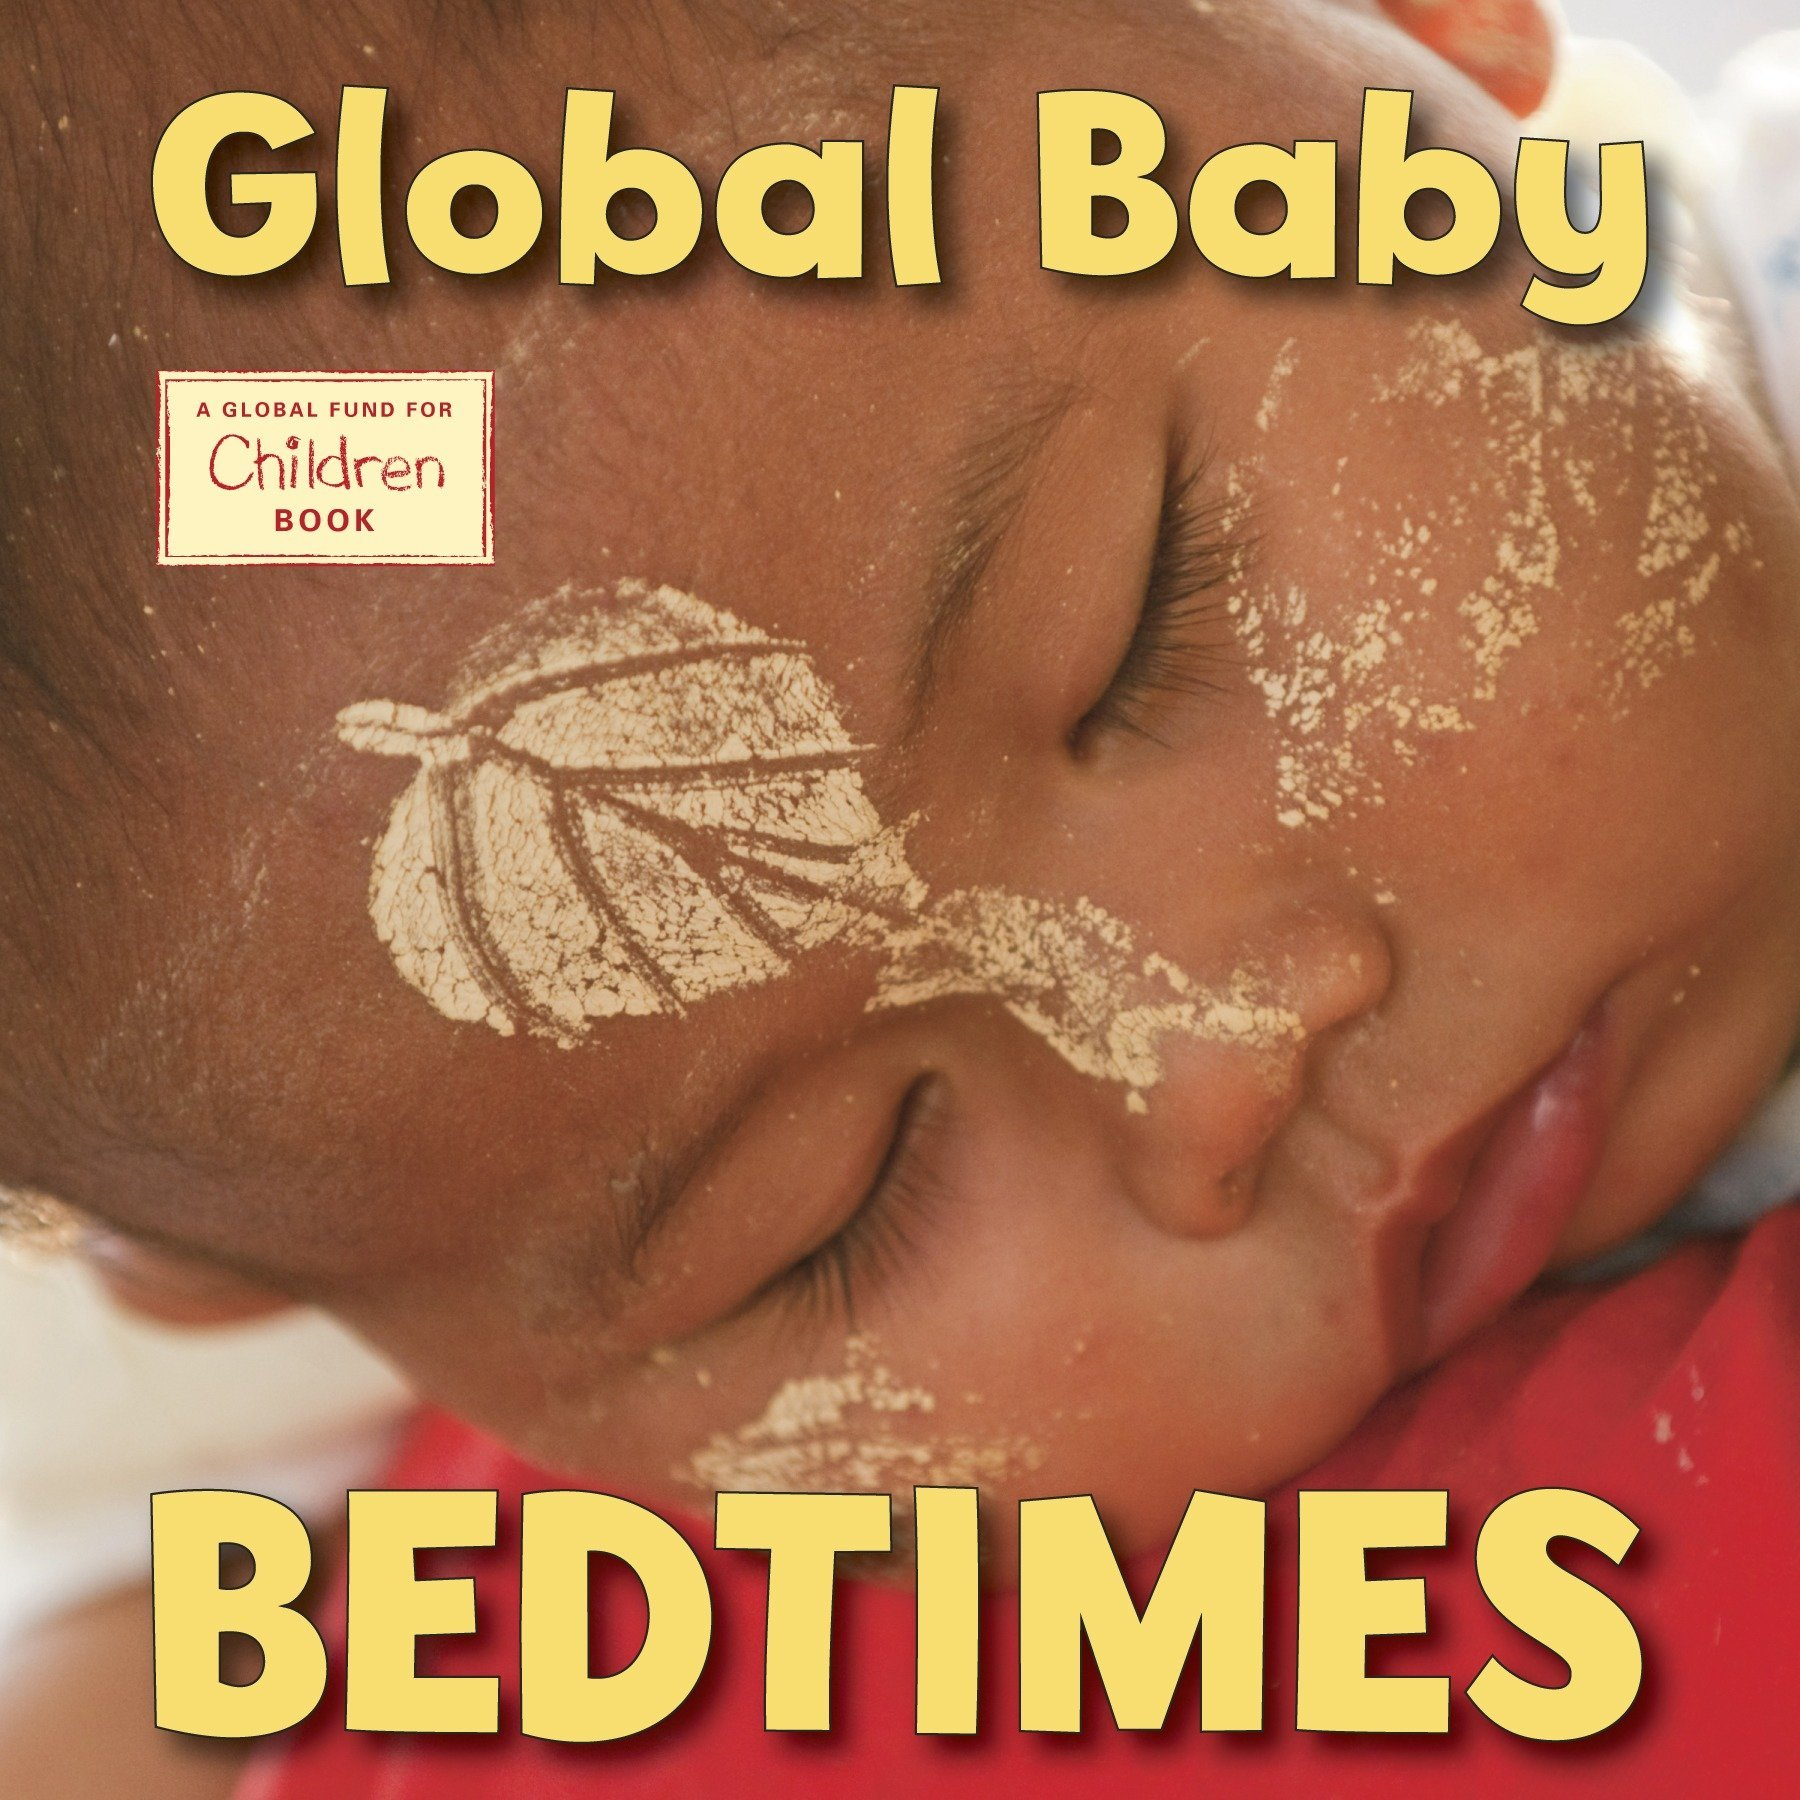 Download Global Baby Bedtimes (Global Fund for Children Books) ebook